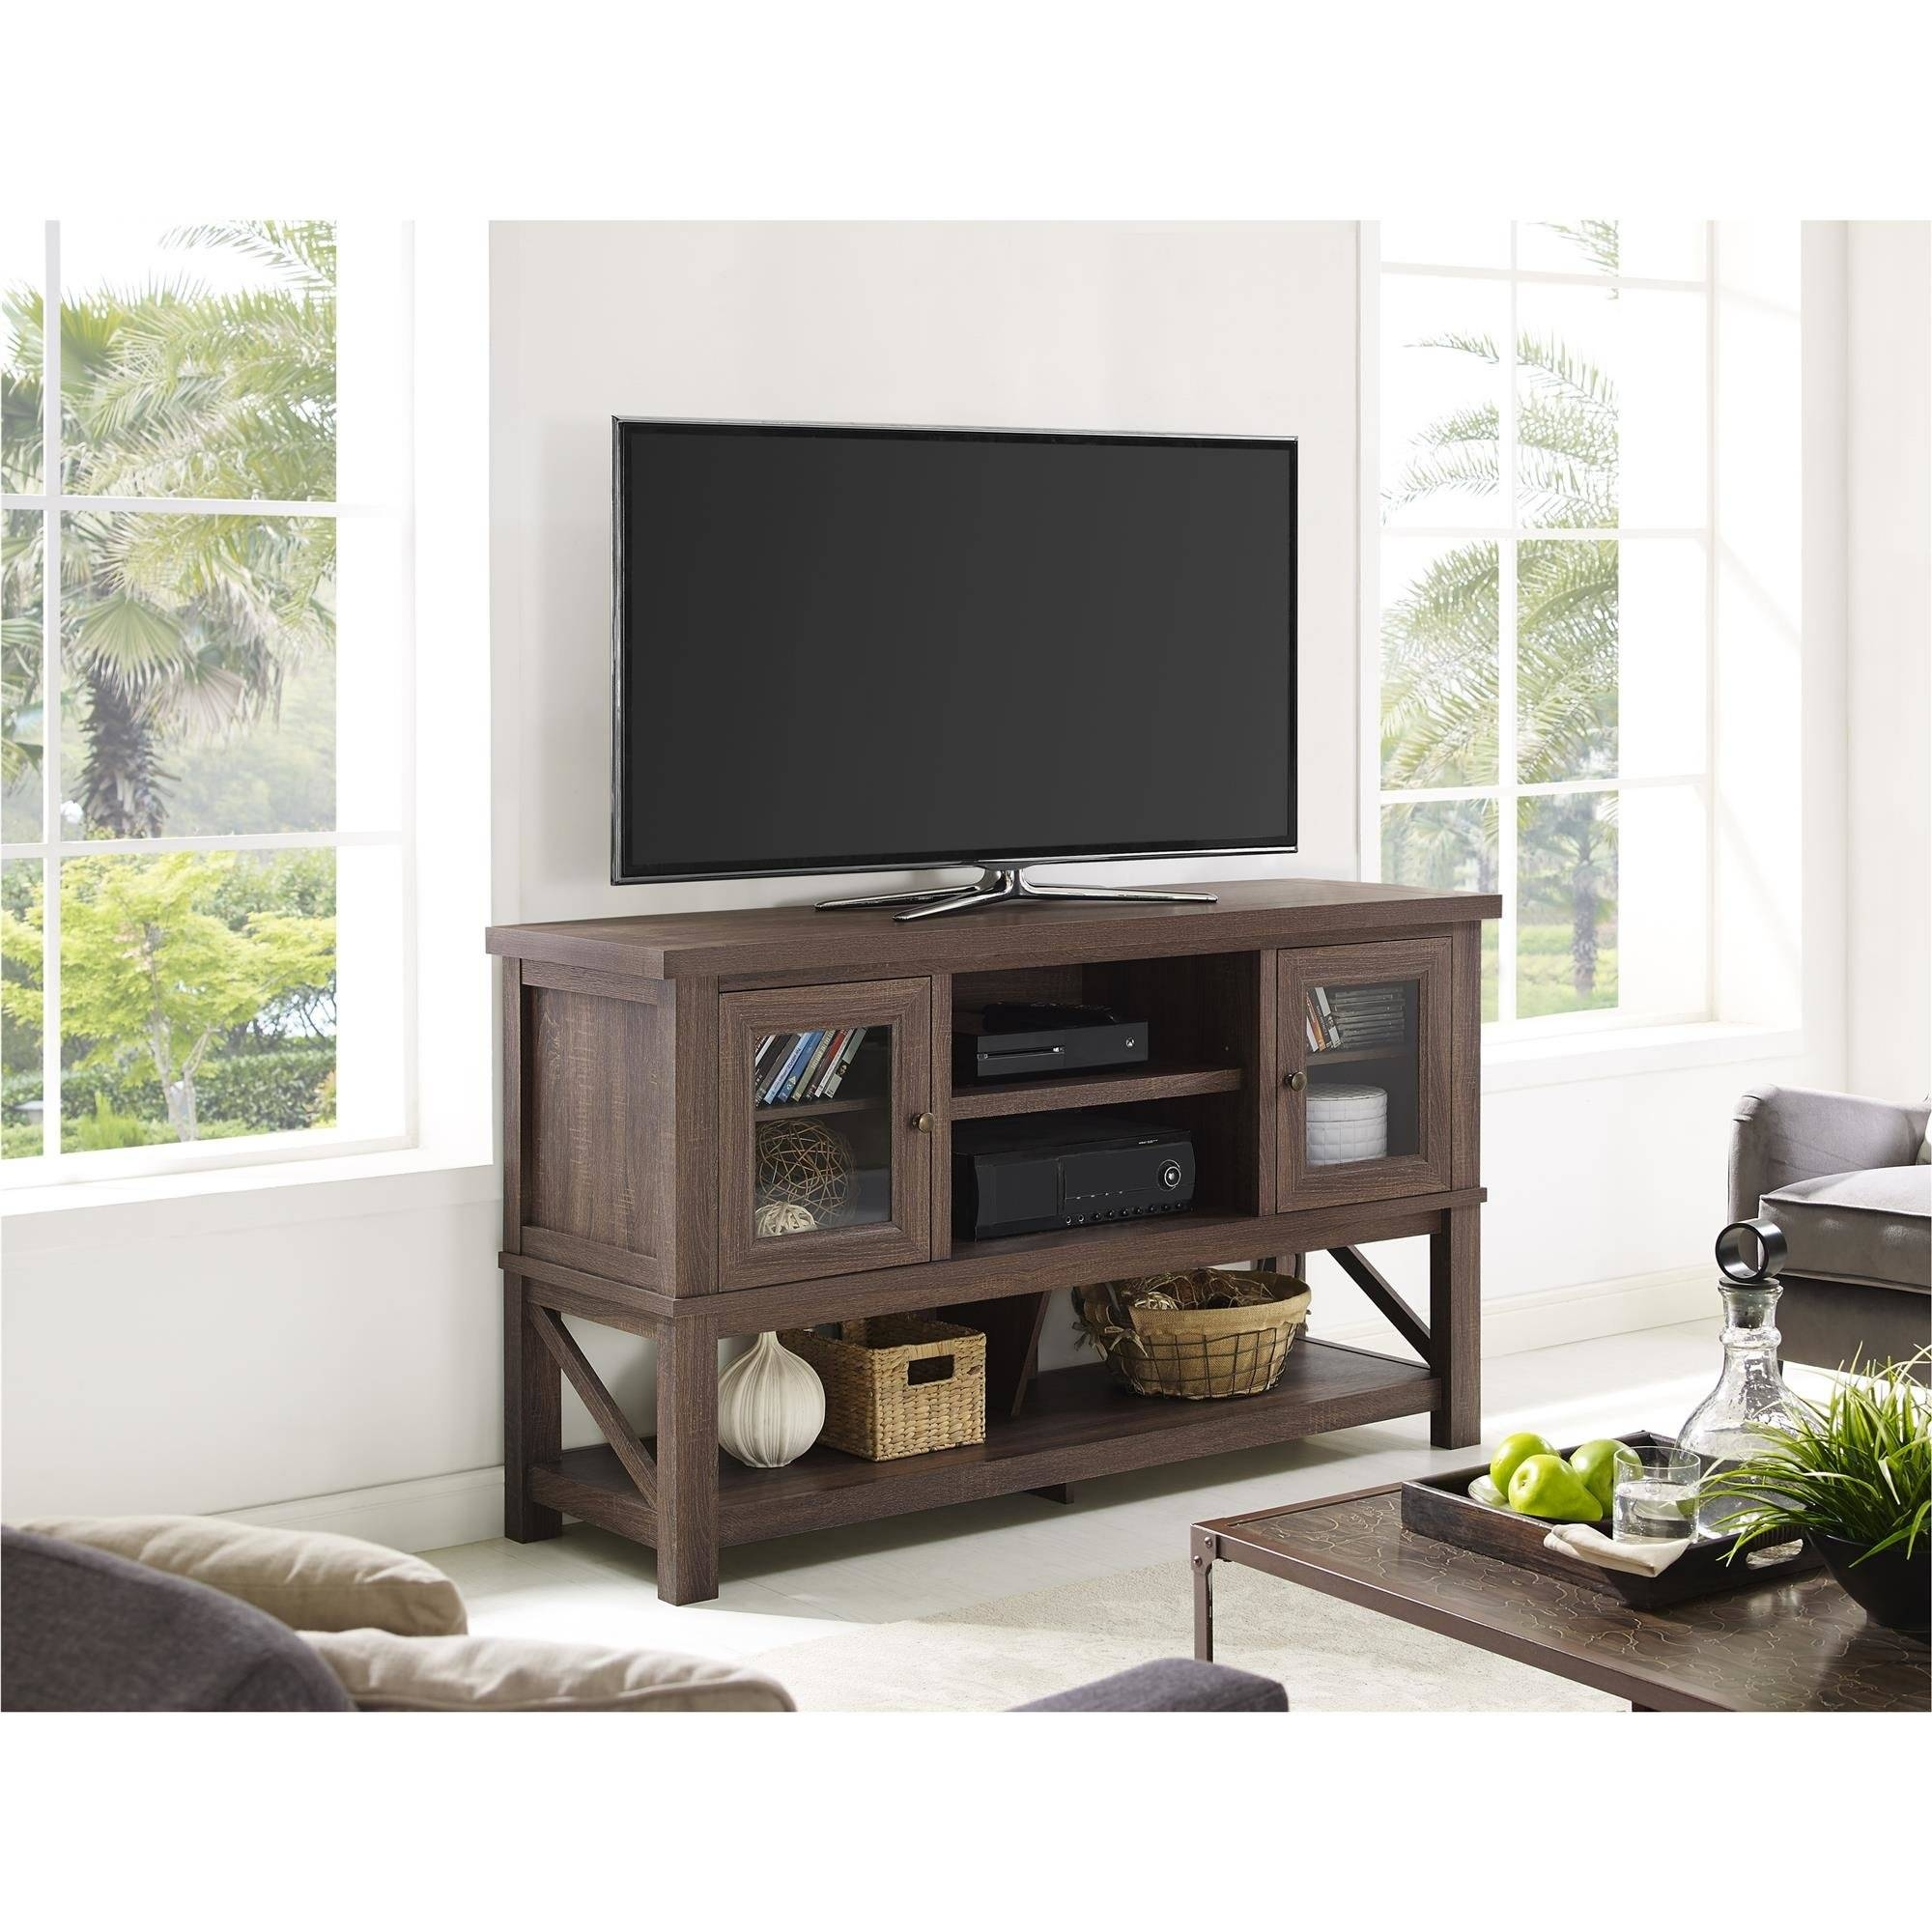 Stylish Coffee Tables And Tv Stands Accent Tables Coffee Table And in Rustic Coffee Tables And Tv Stands (Image 18 of 30)